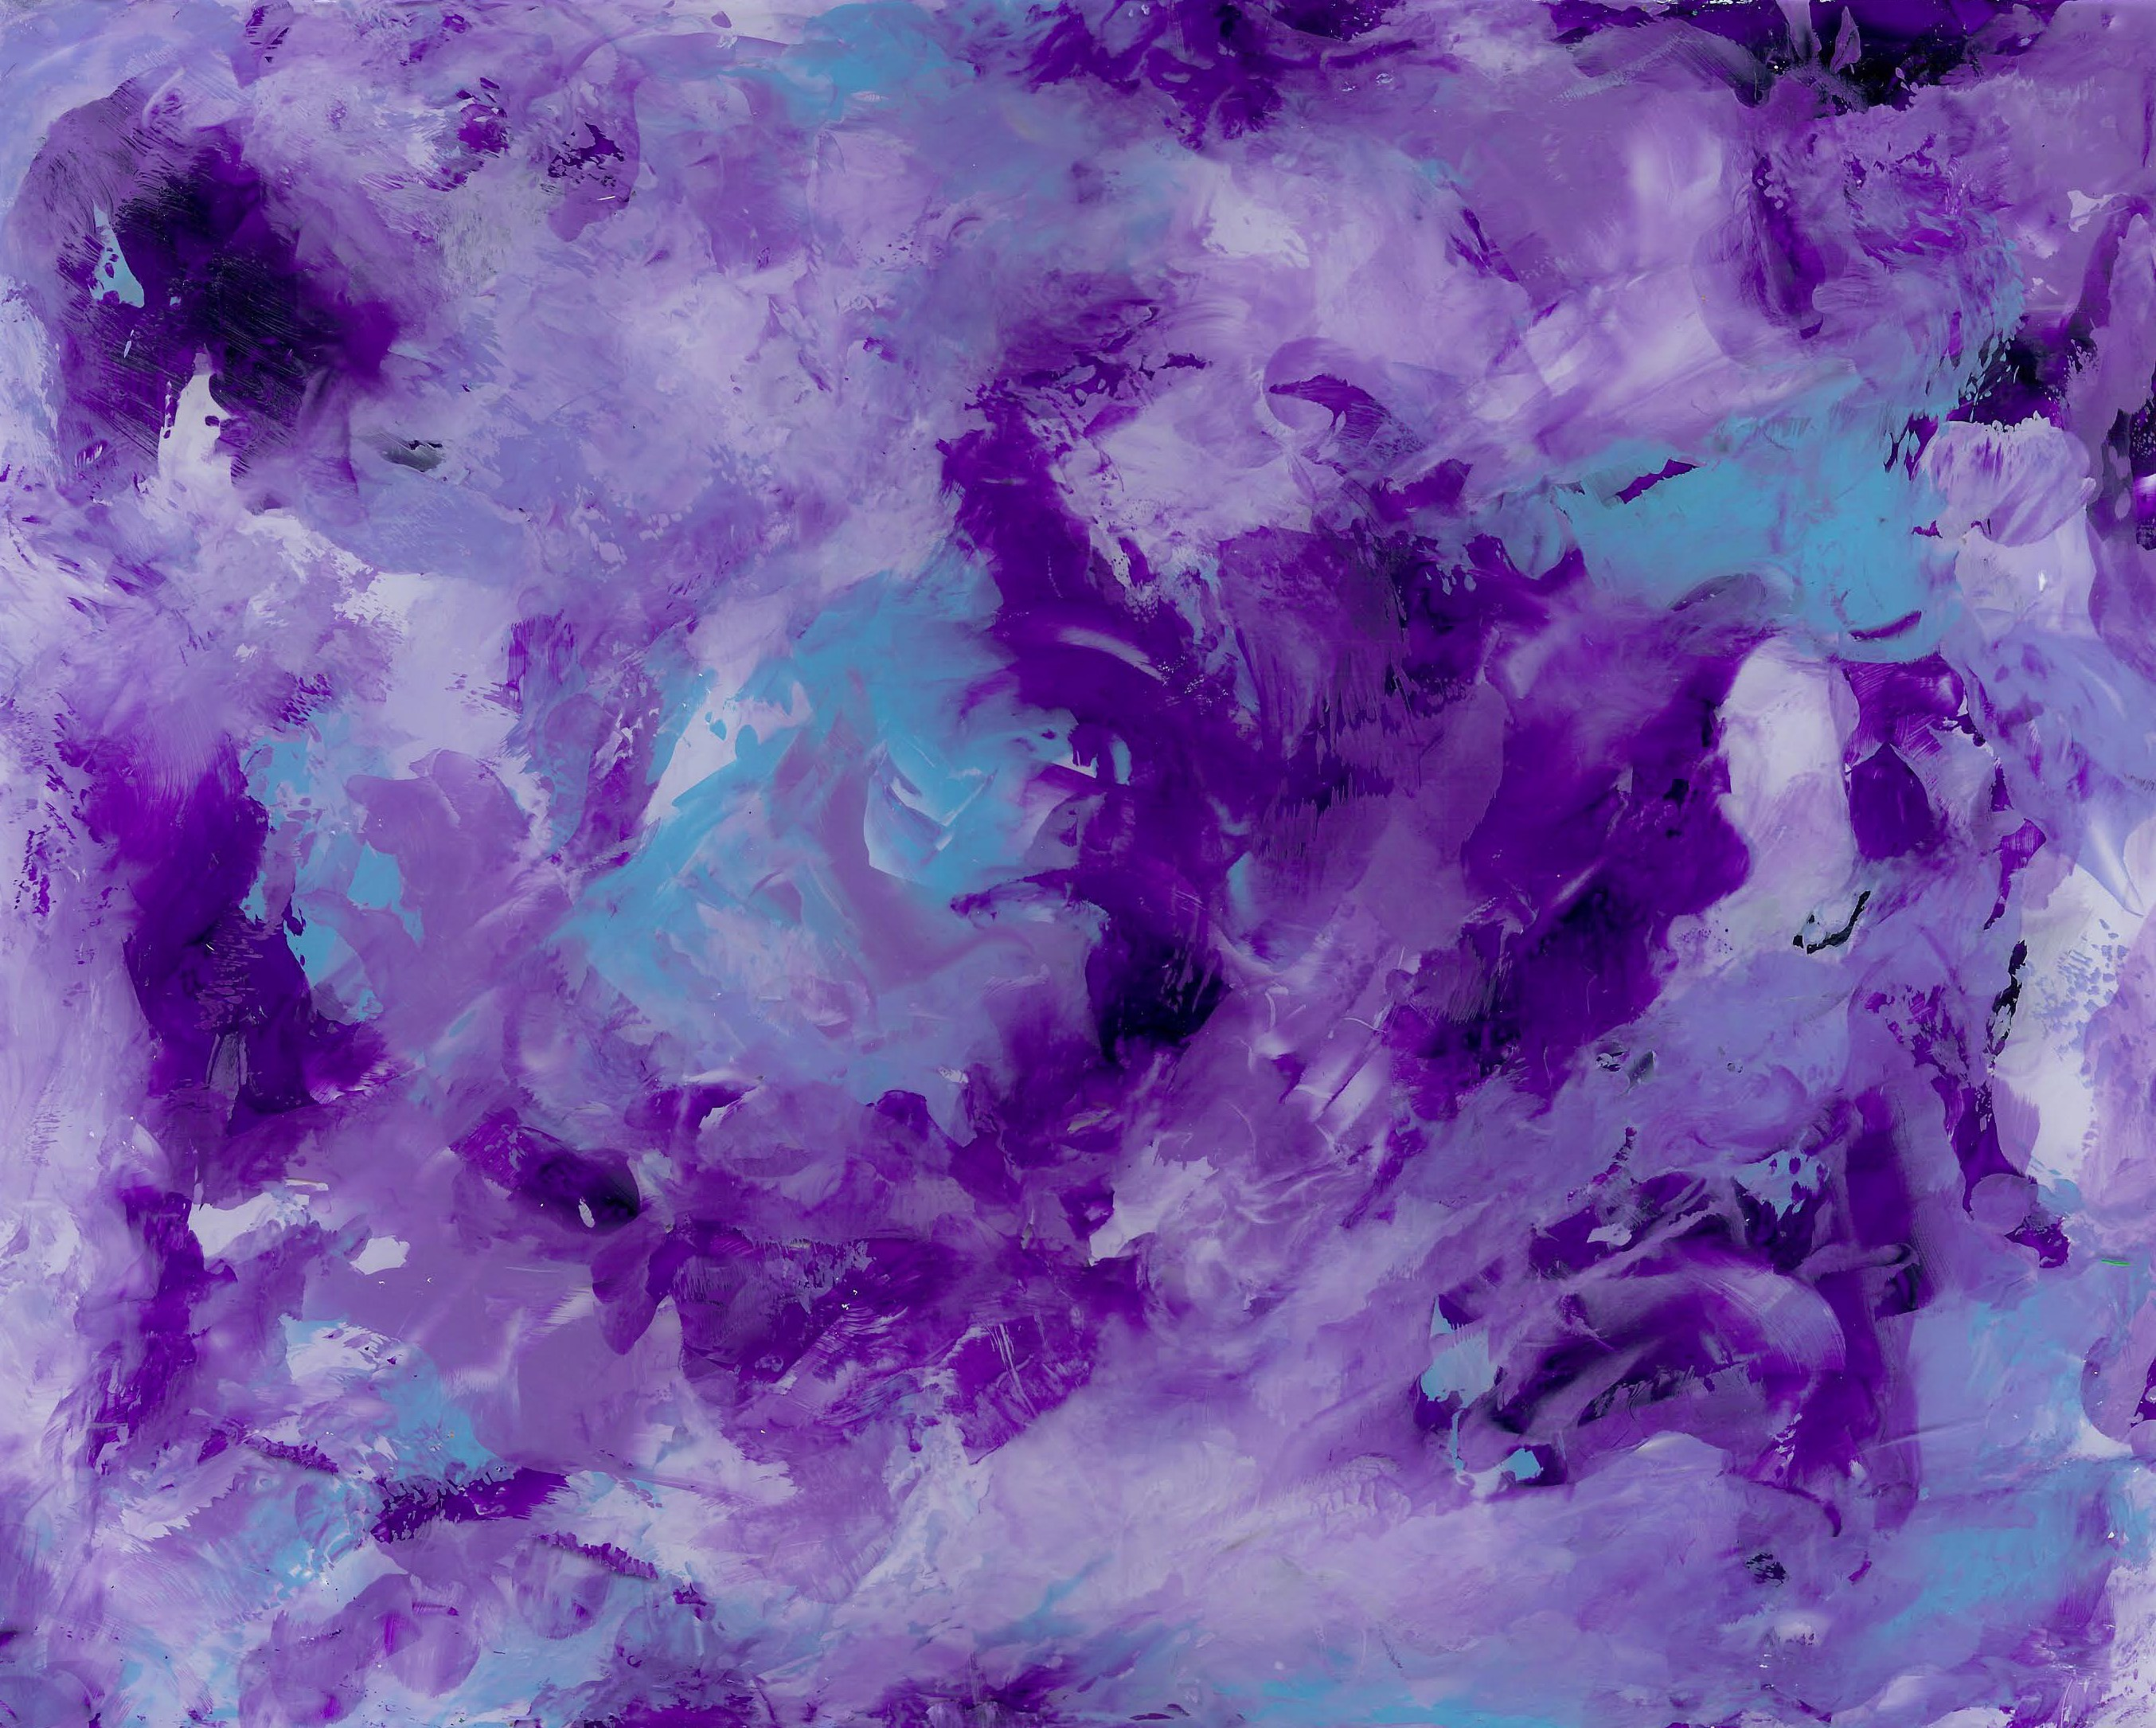 Swirling Purple - Acrylic on Plexiglas 11 X 14 - $125